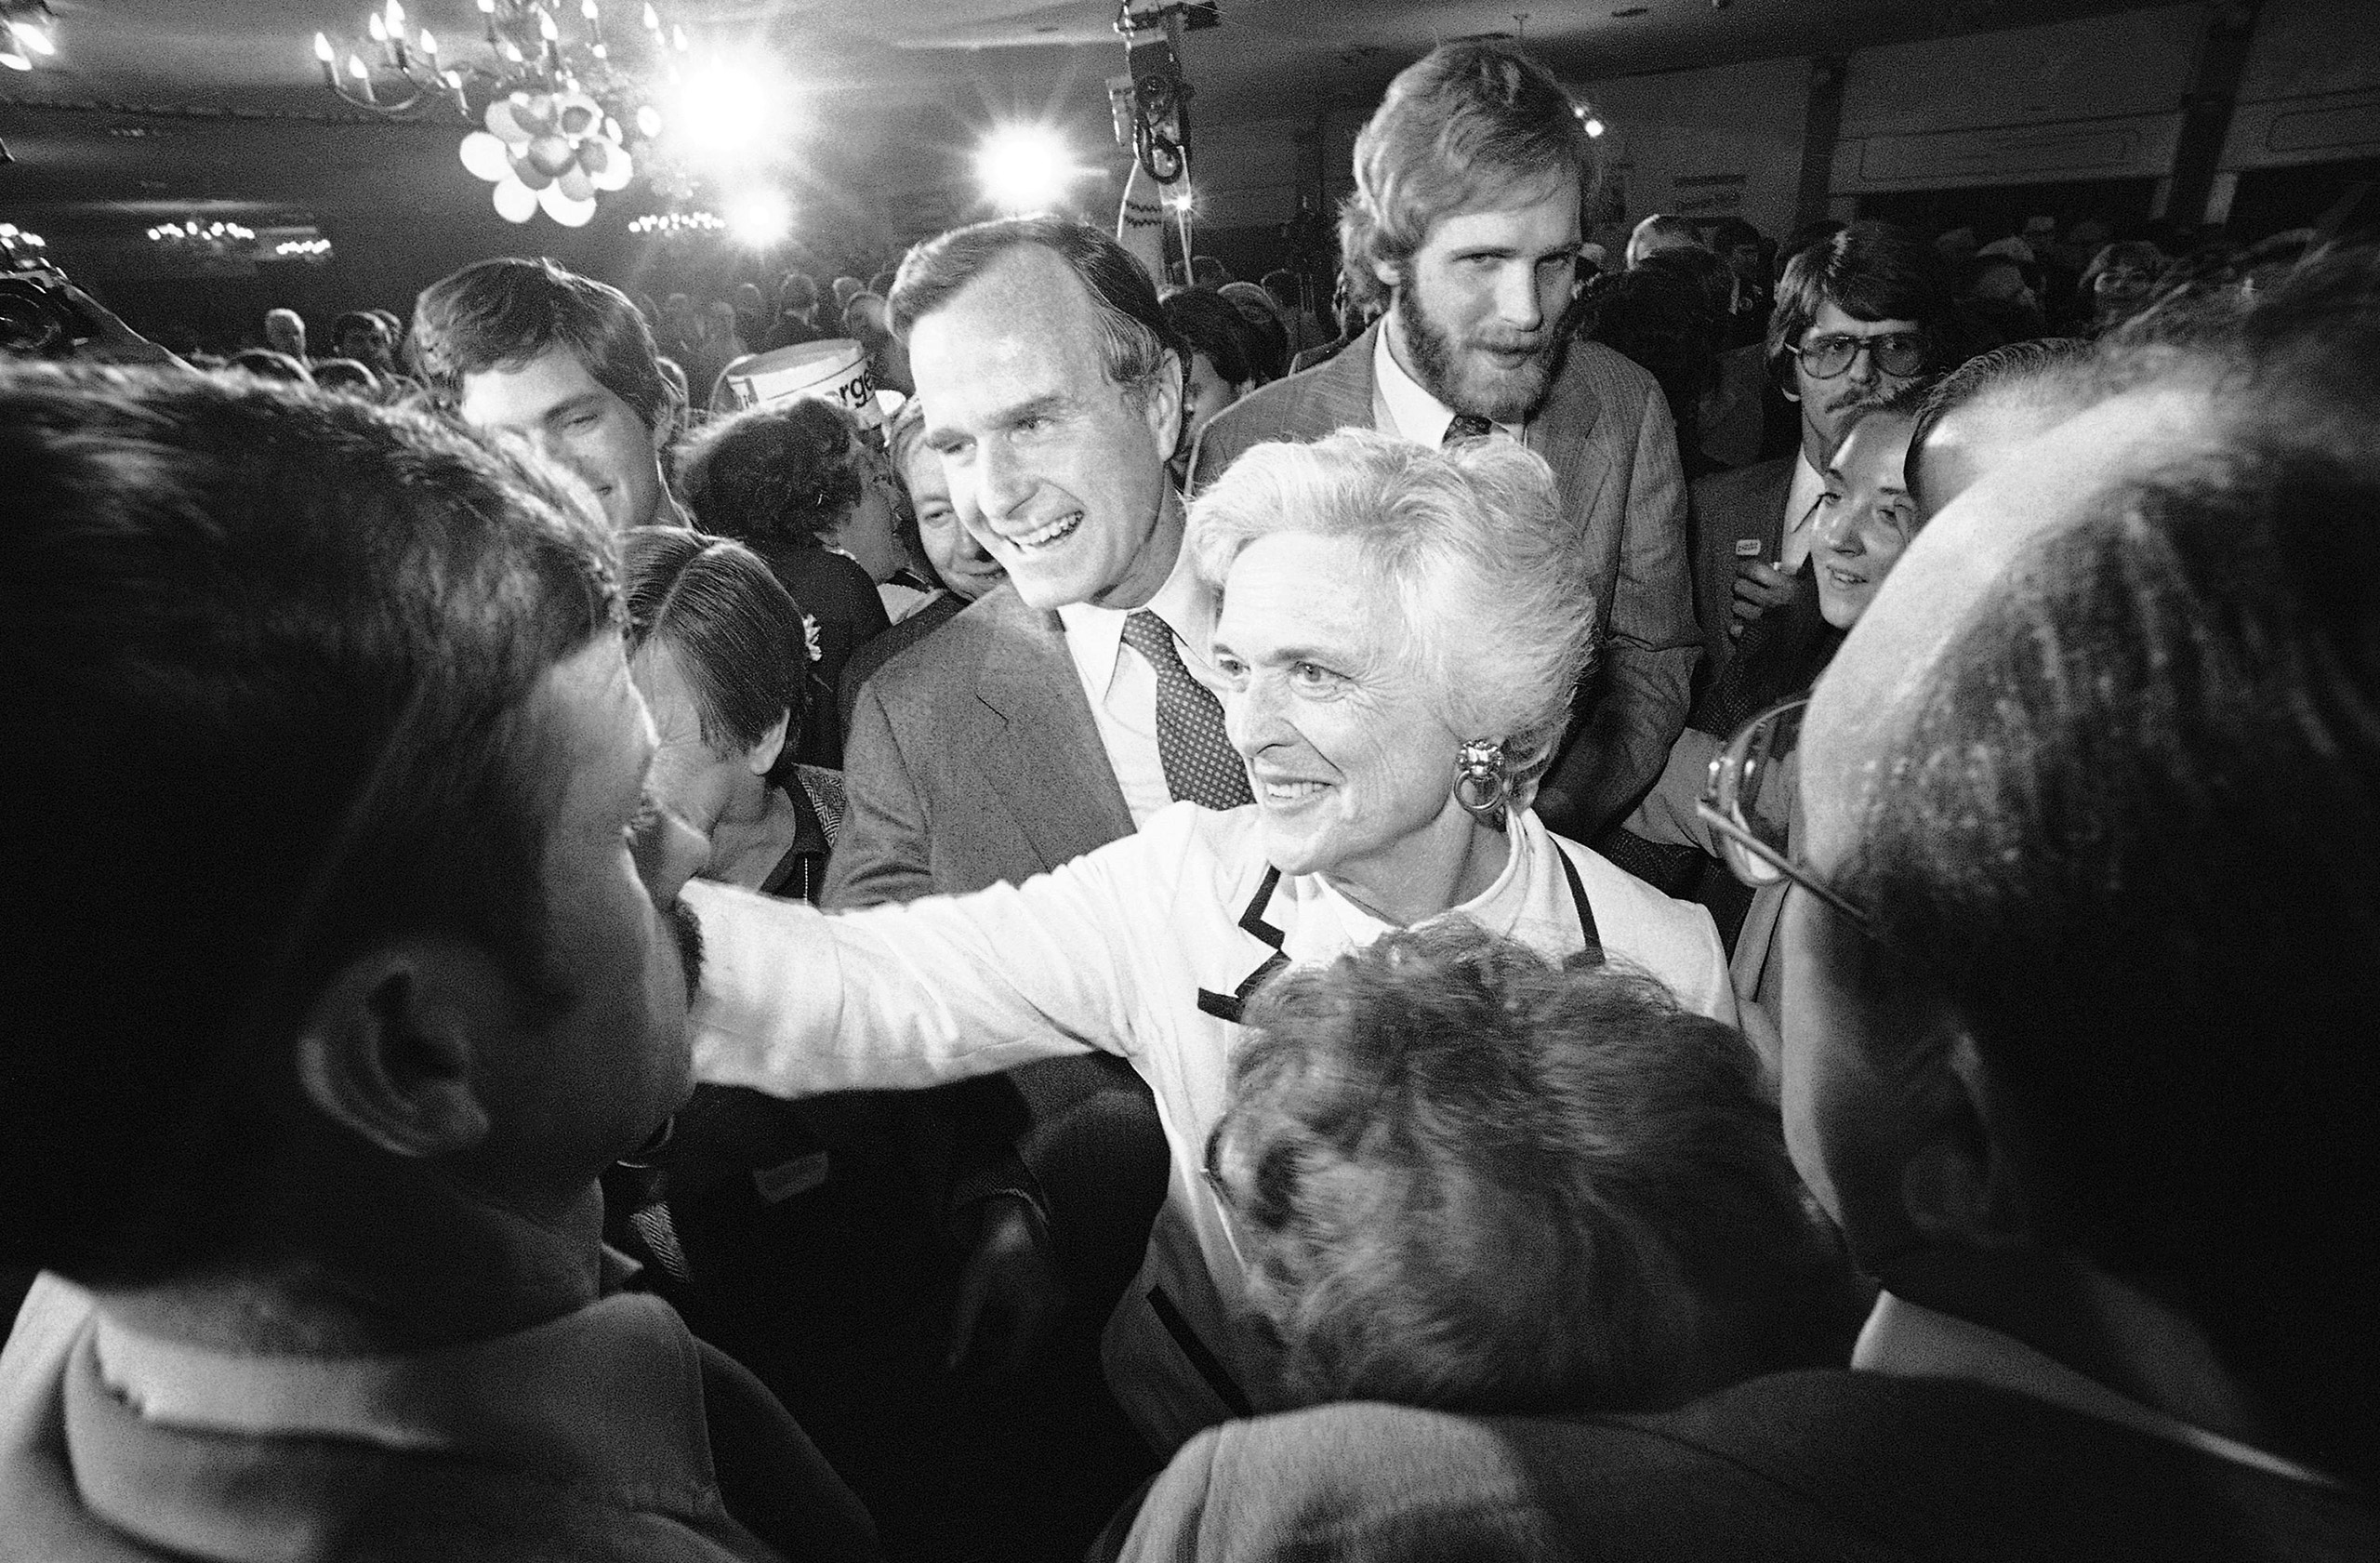 Former CIA director George Bush and his wife, Barbara, smile and shake hands with supporters as Bush left a Concord hotel ballroom after he spoke with supporters in Concord on Tuesday, Feb. 26, 1980.